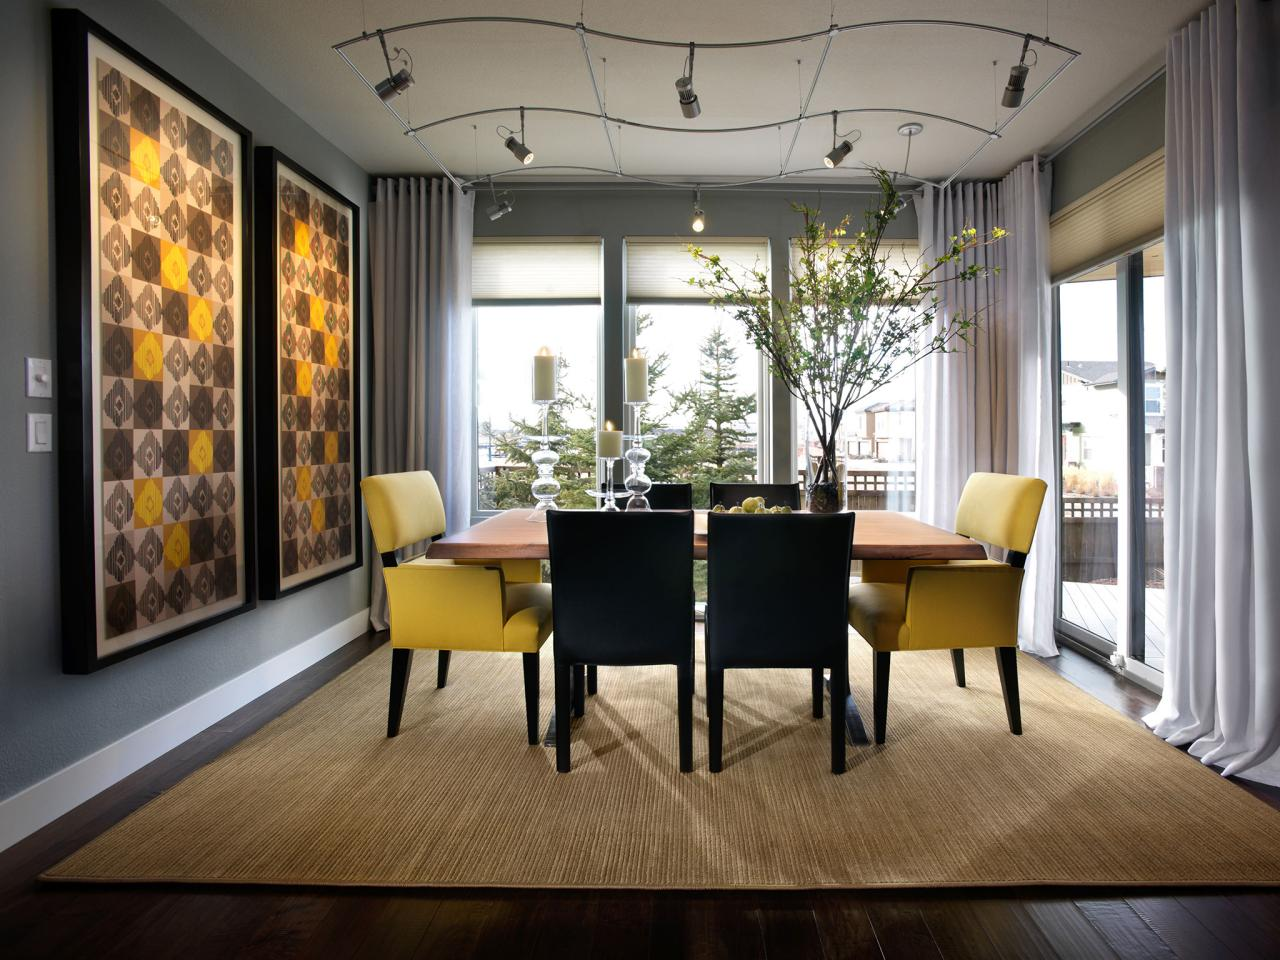 GH2011_Dining-Room-Wide-Shot_s4x3.jpg.rend.hgtvcom.1280.960